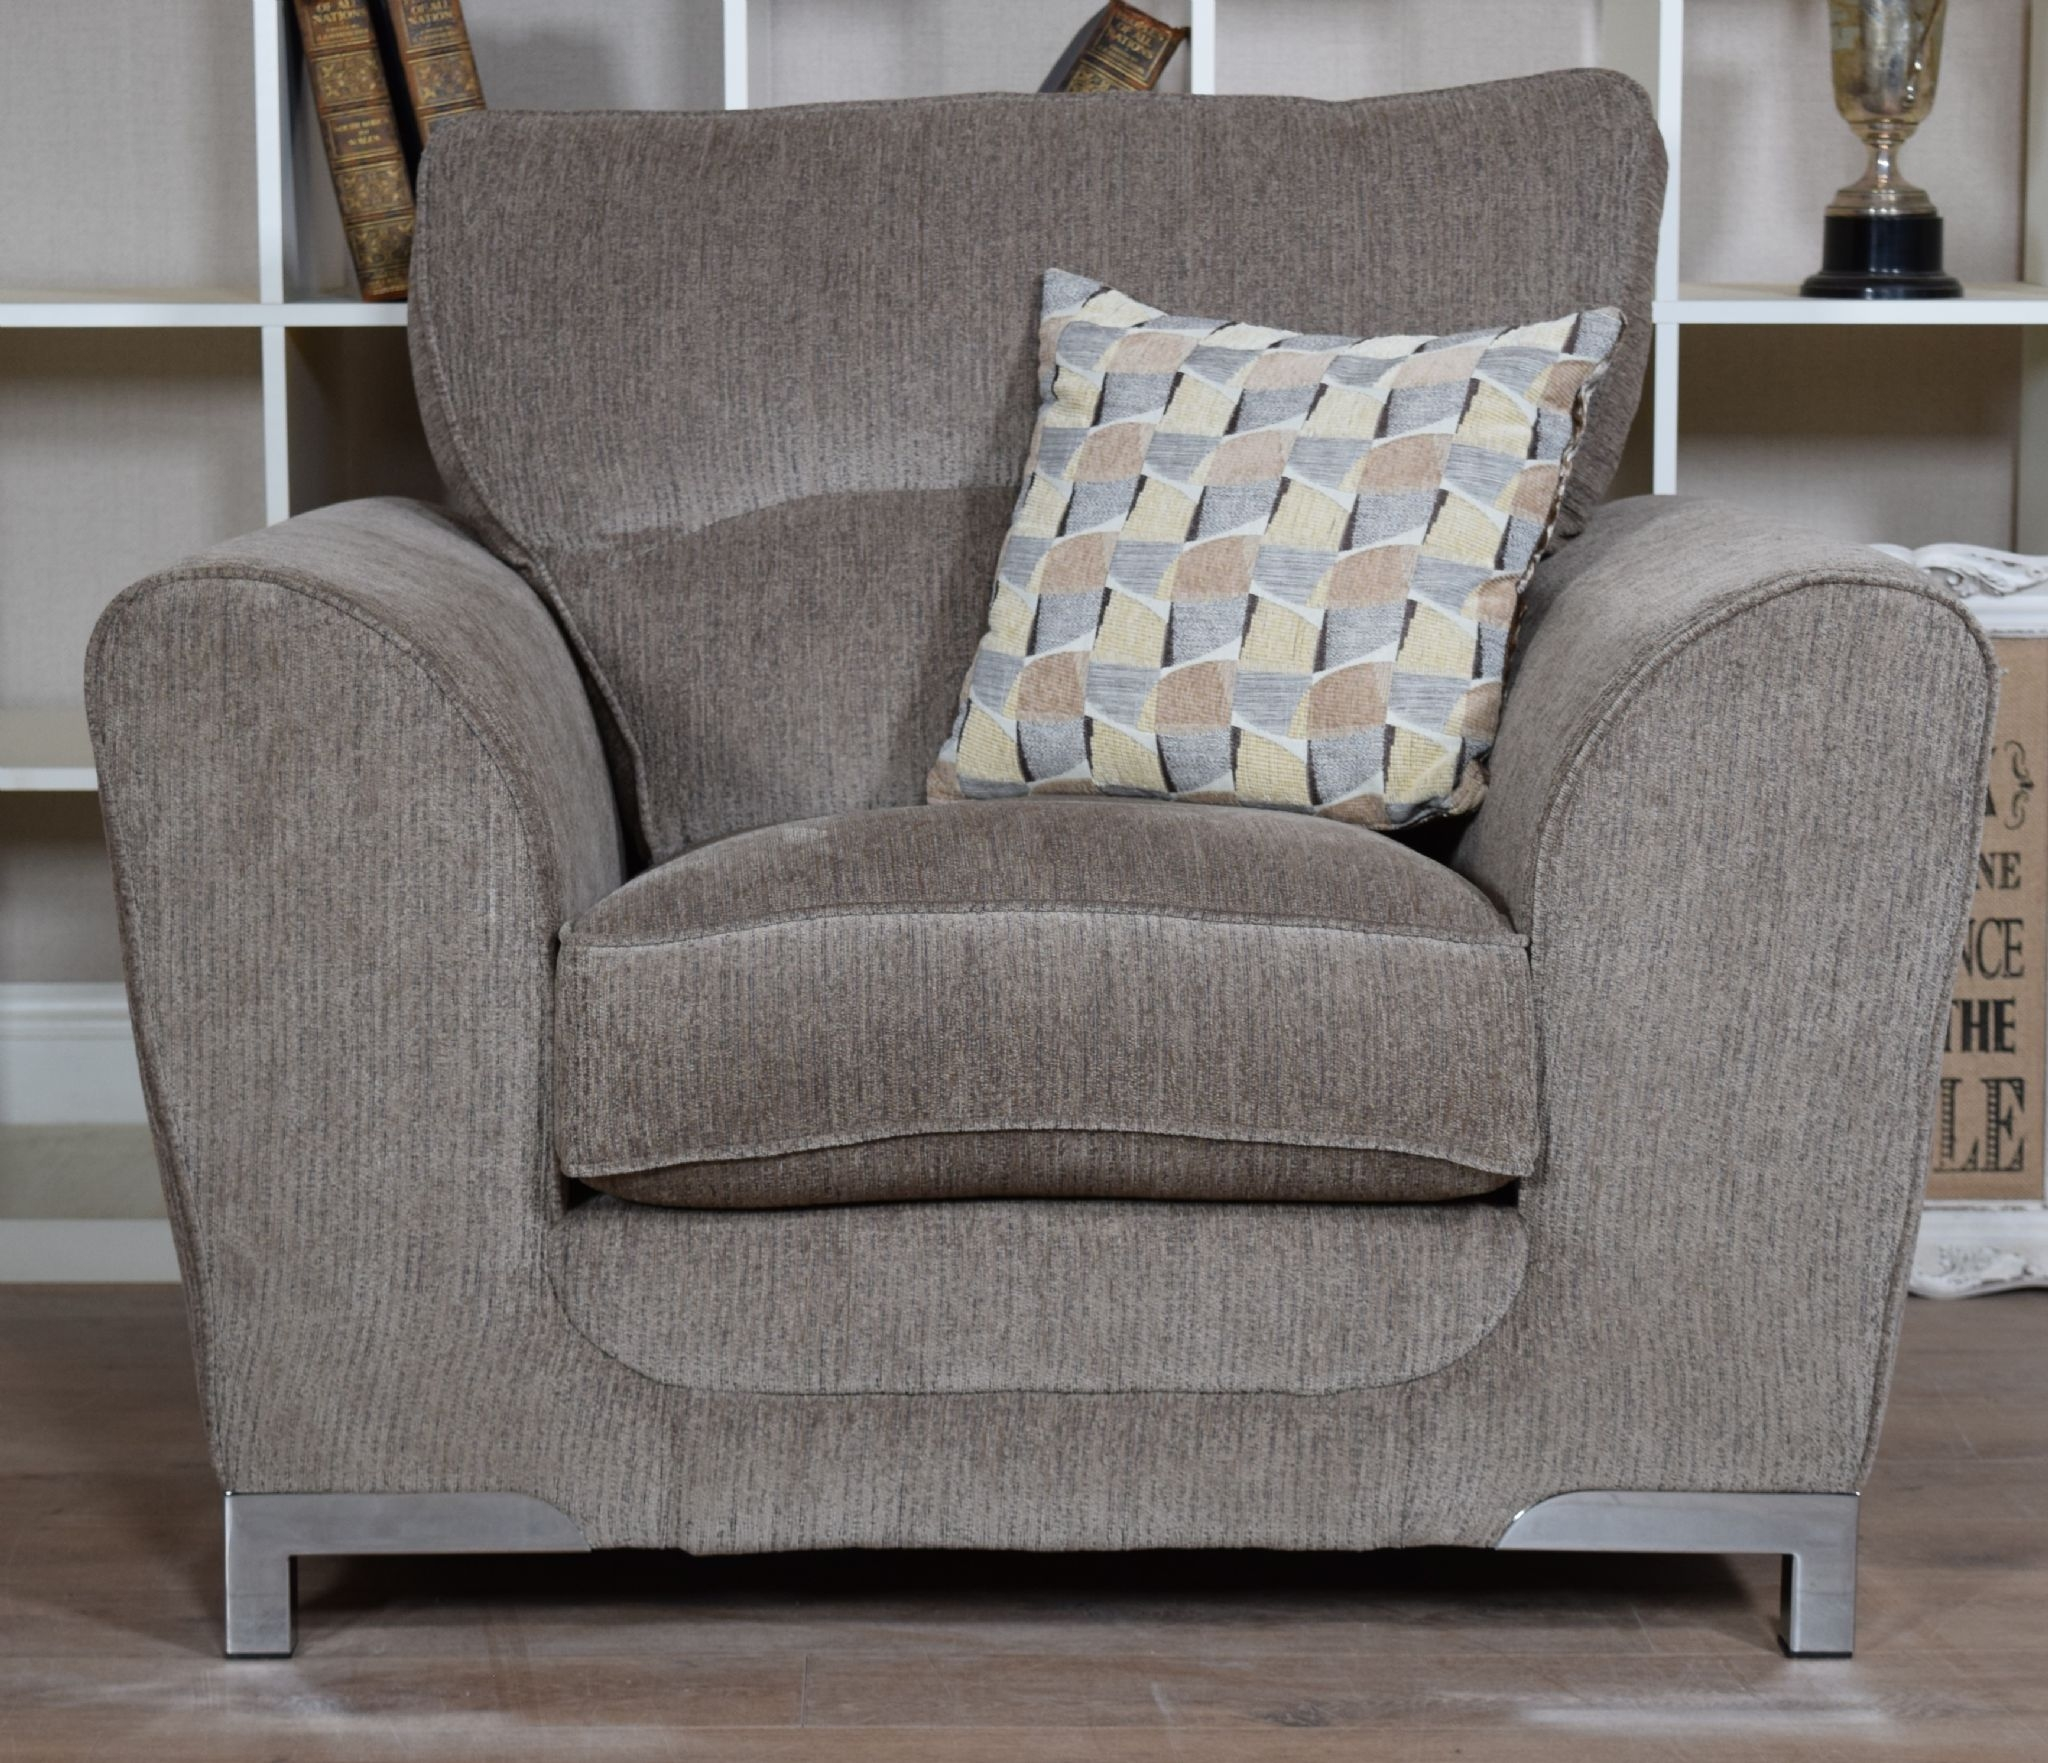 Set Nikki 3 Seater Sofa Cuddle Chair Suite Set Mocha Grey With 3 Seater Sofa And Cuddle Chairs (Image 13 of 15)